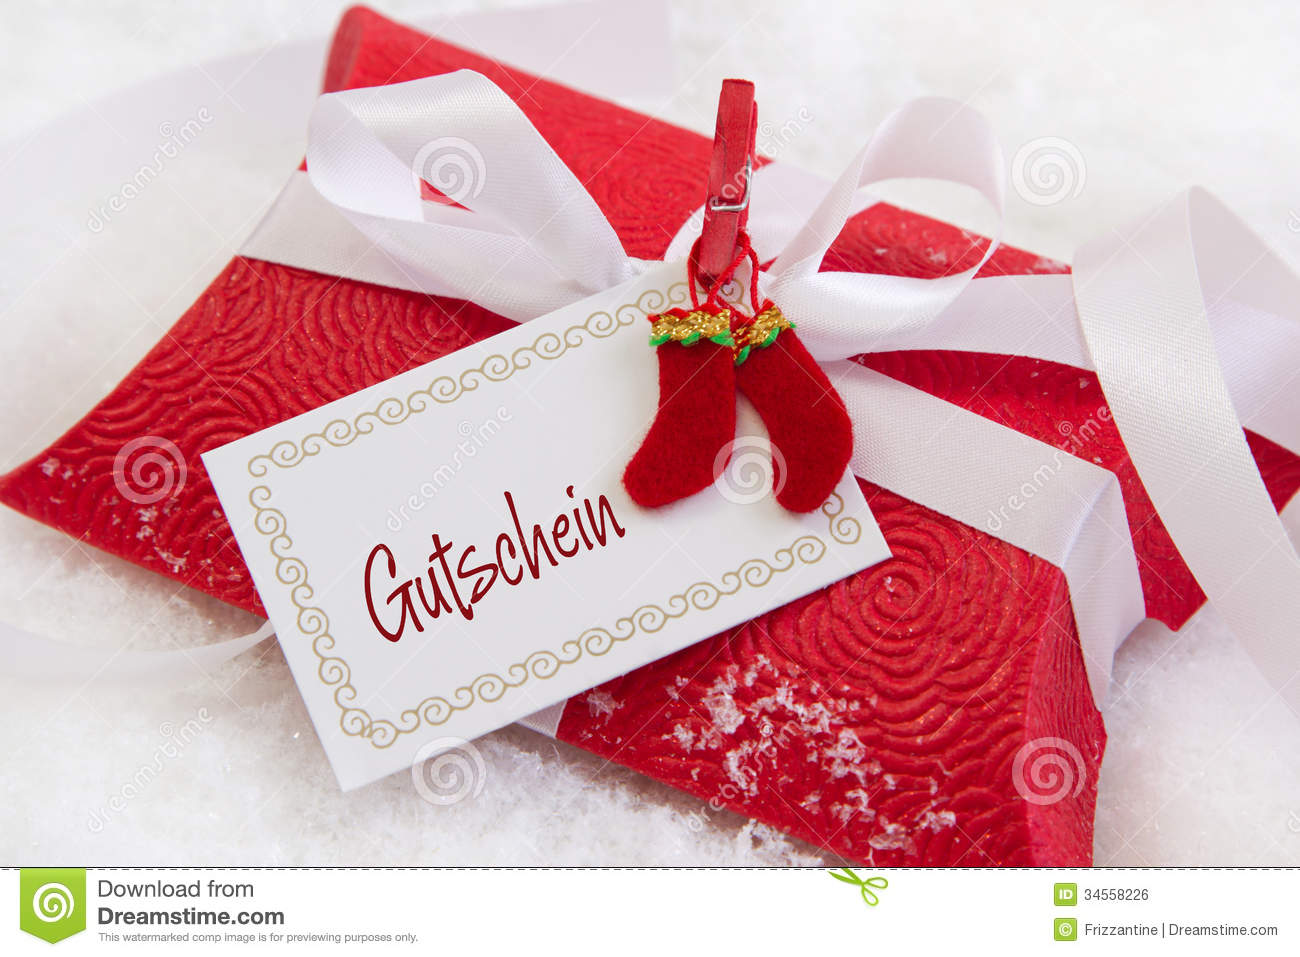 Royalty free stock image close up of red christmas present box with